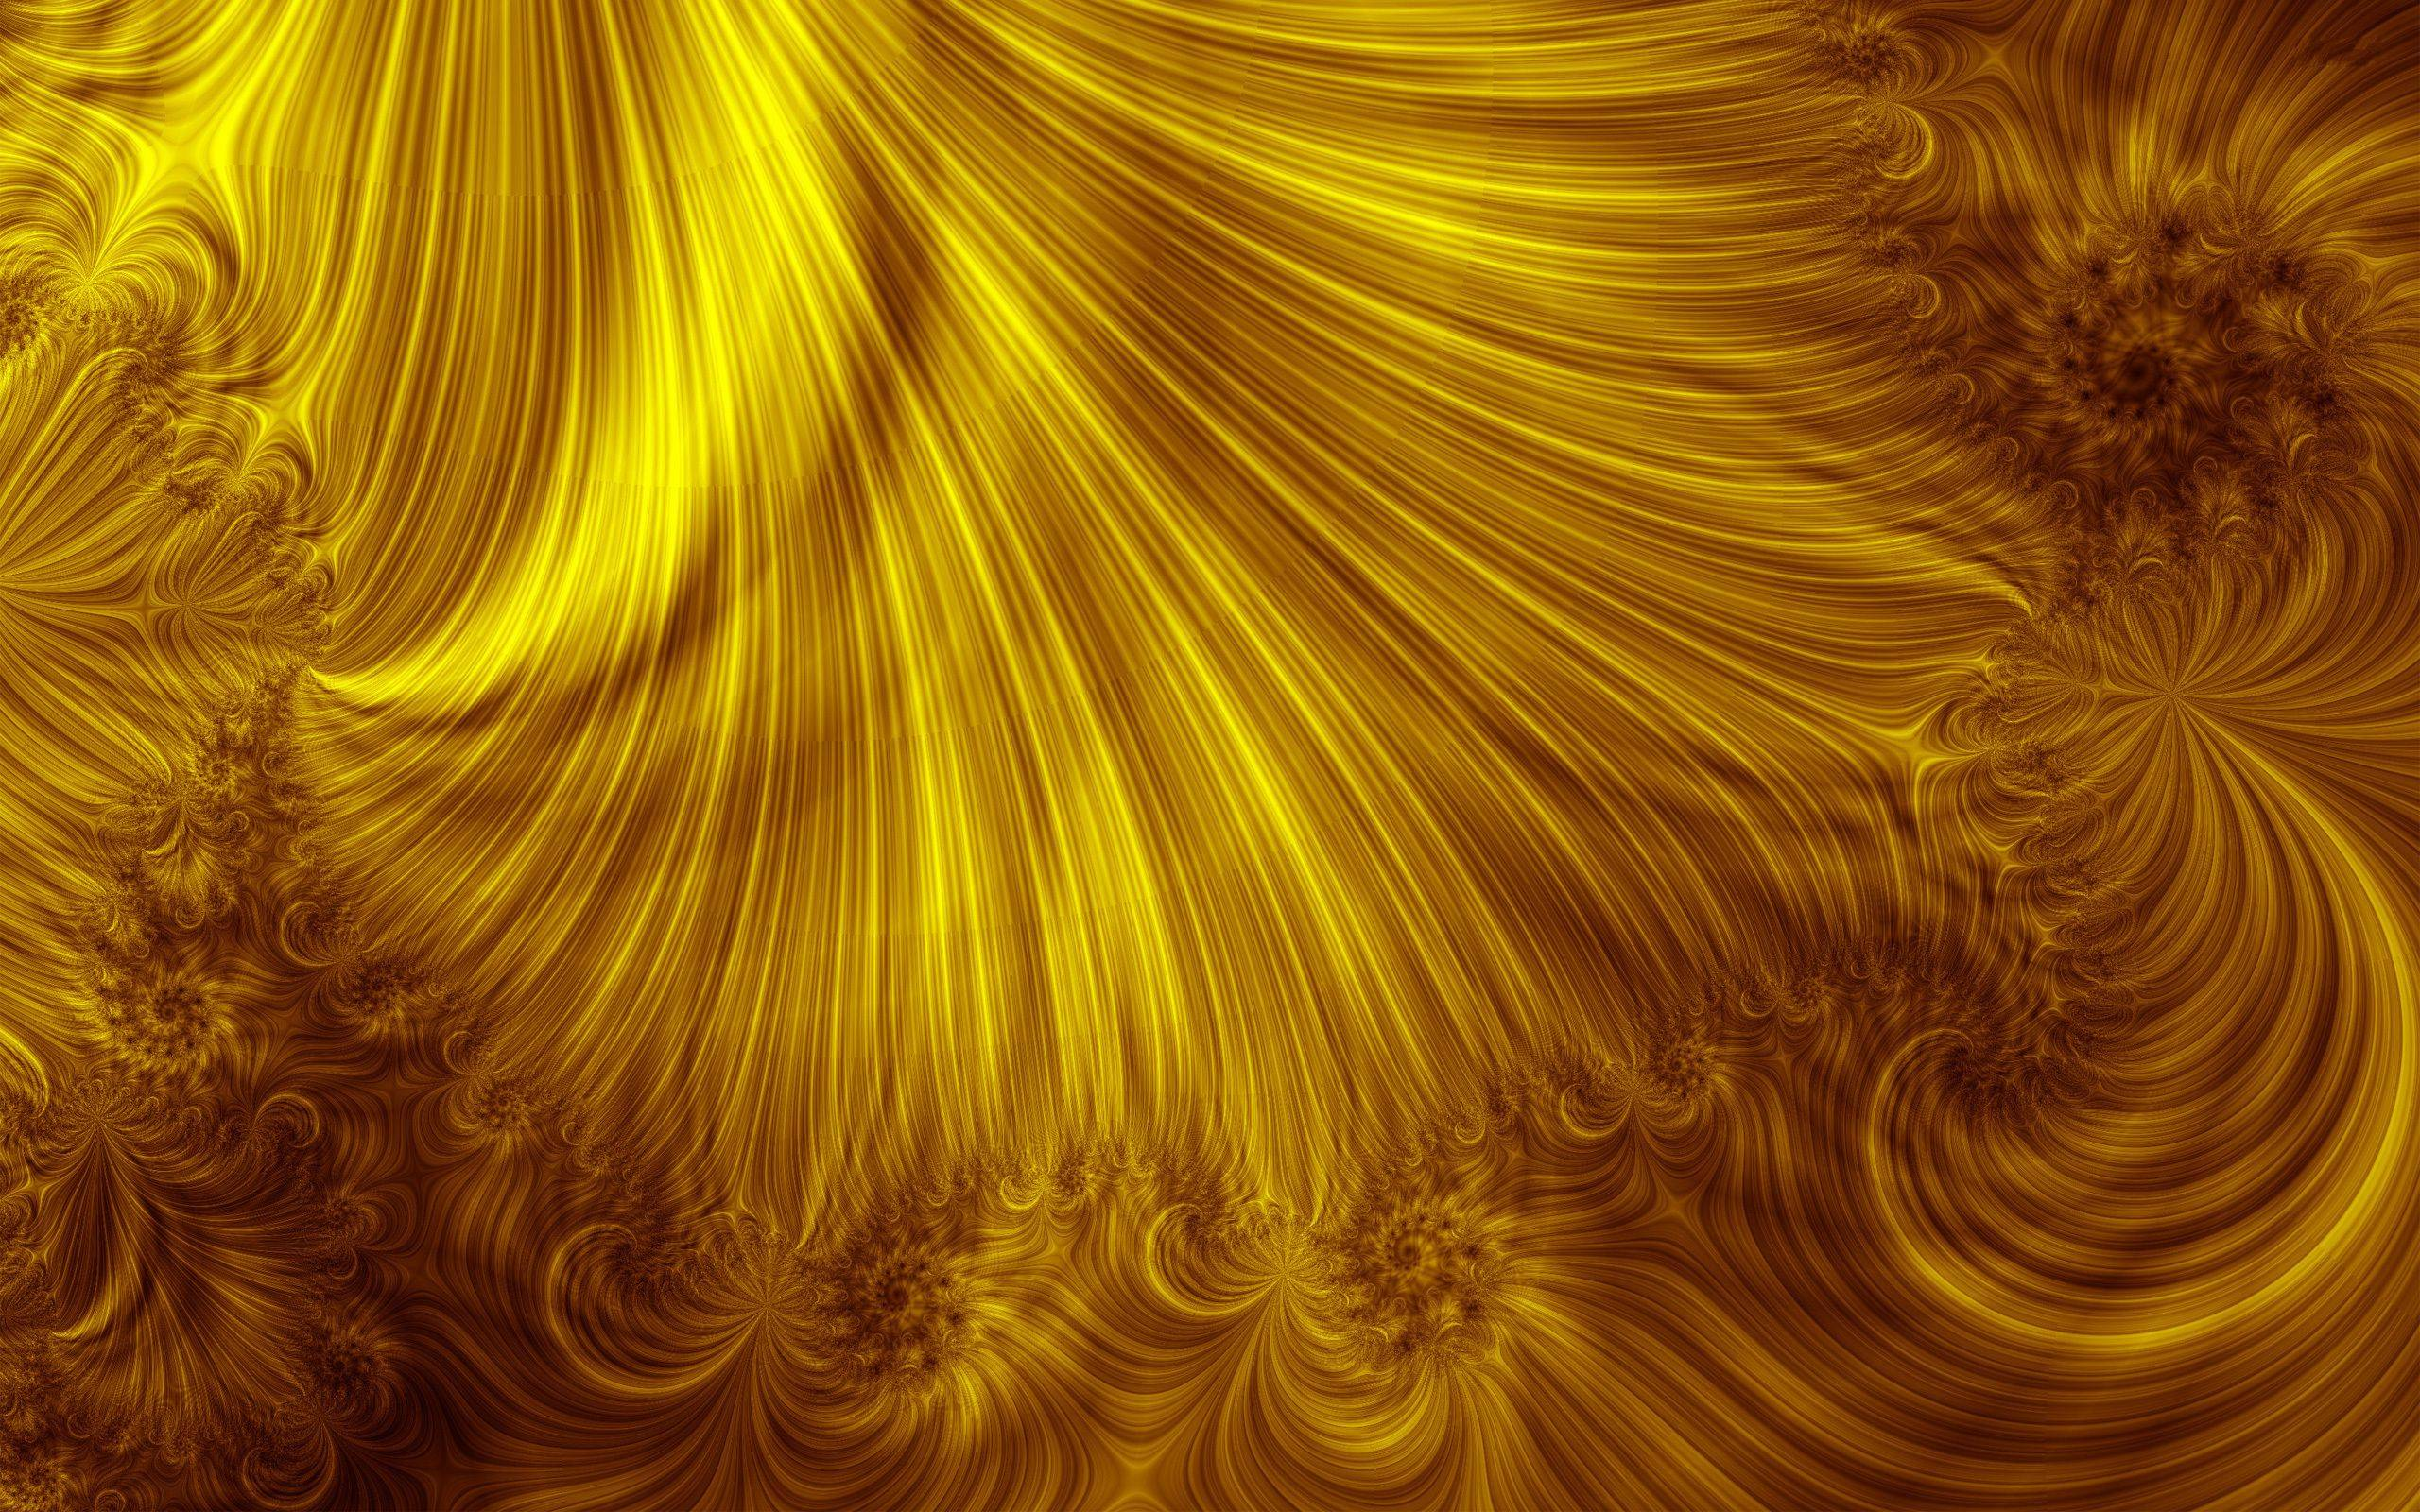 Gold color wallpapers wallpaper cave for Wallpaper styles and colors